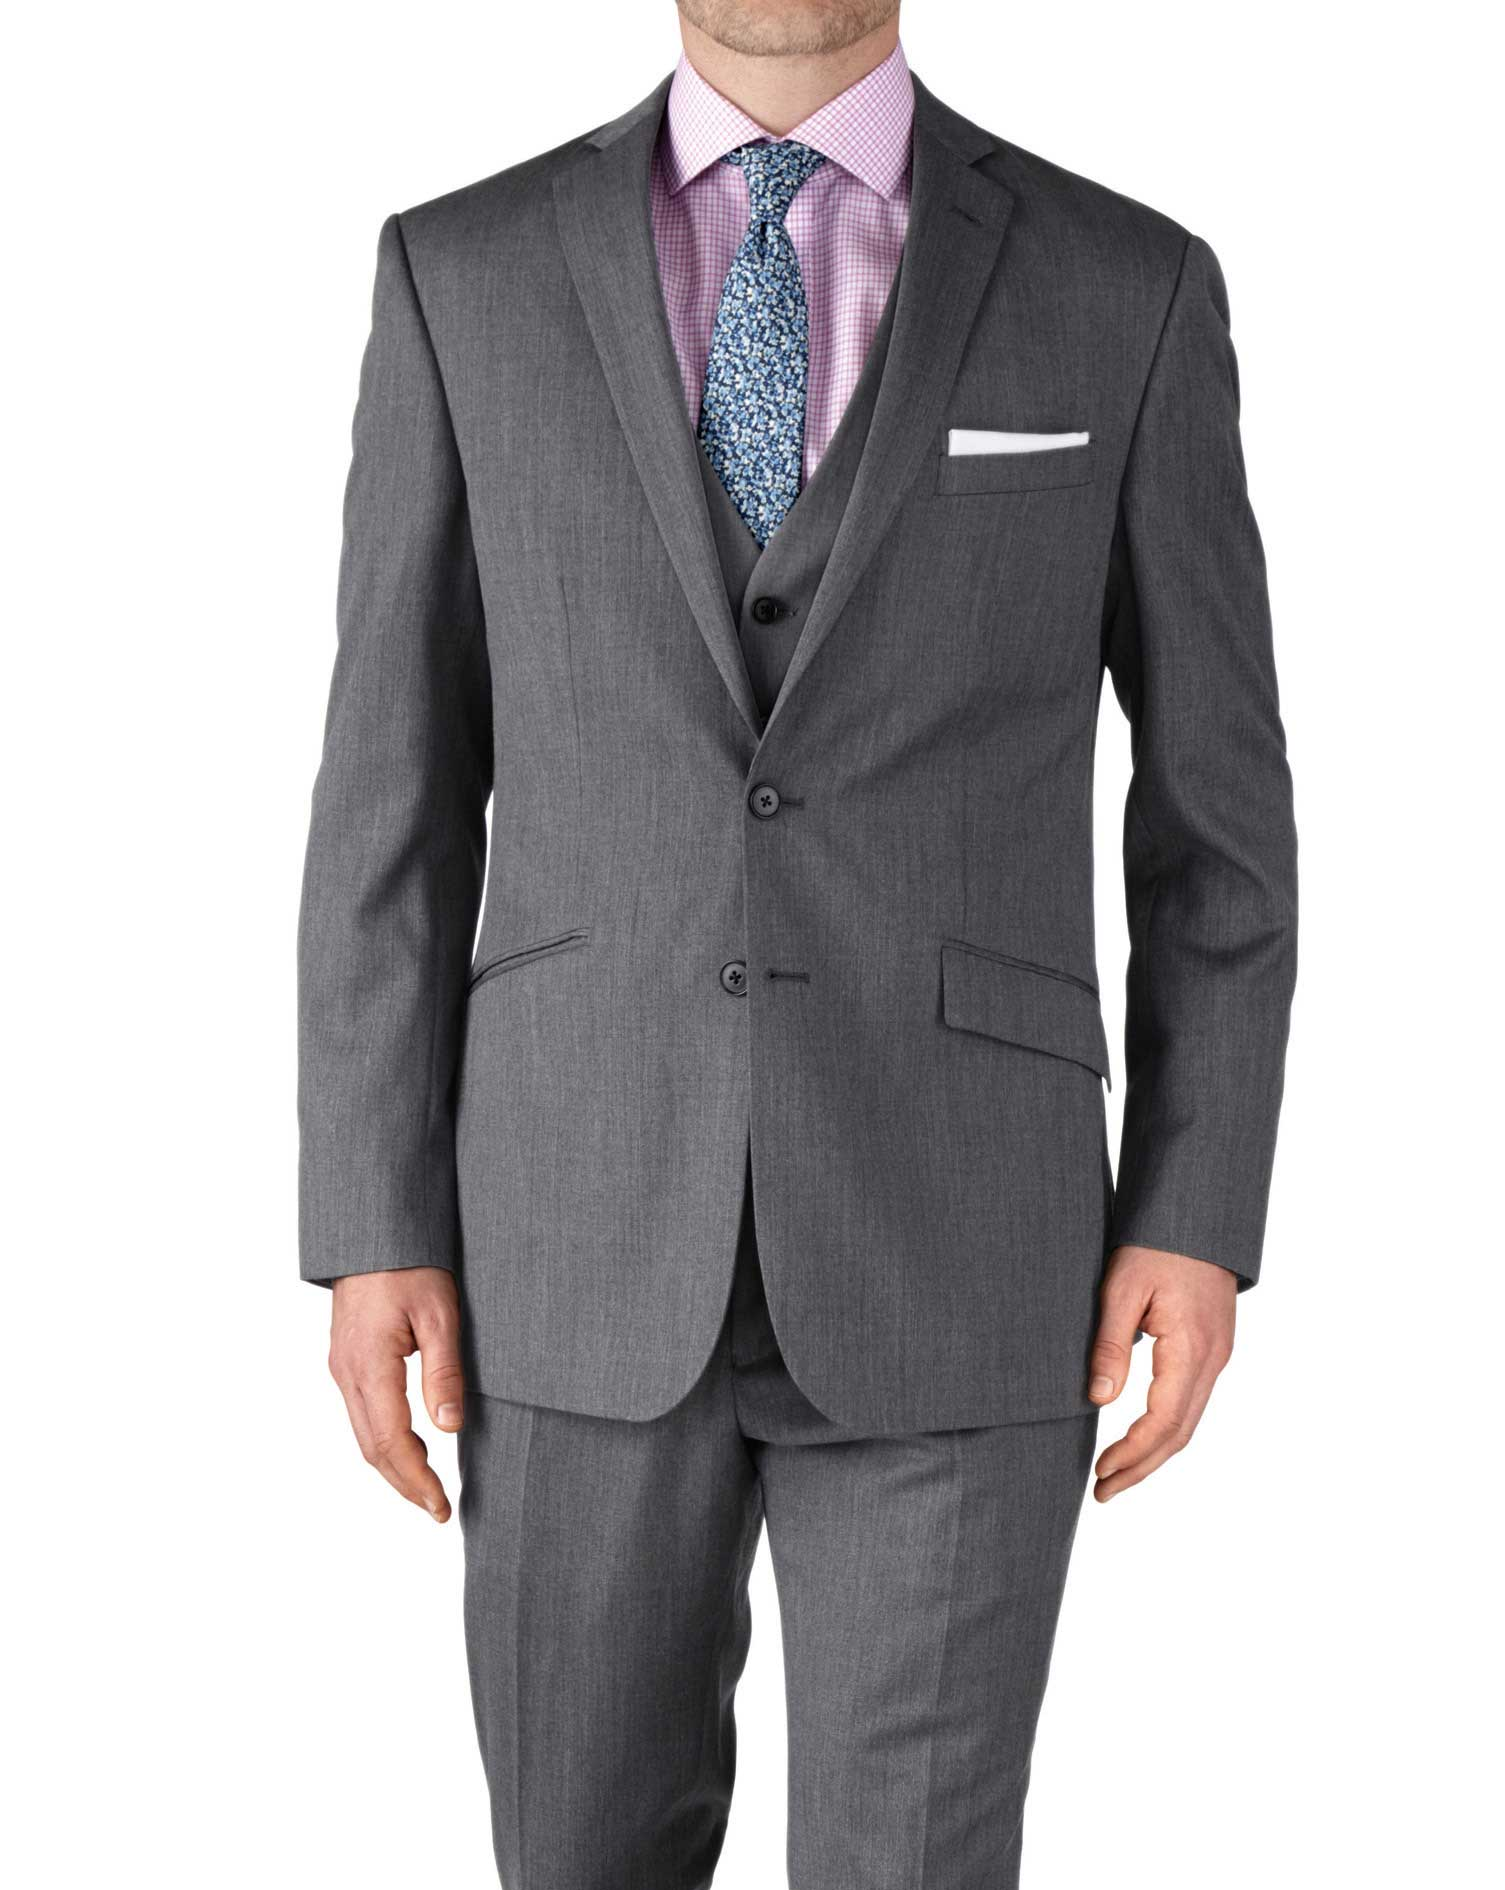 Silver Slim Fit Twill Business Suit Wool Jacket Size 40 Regular by Charles Tyrwhitt